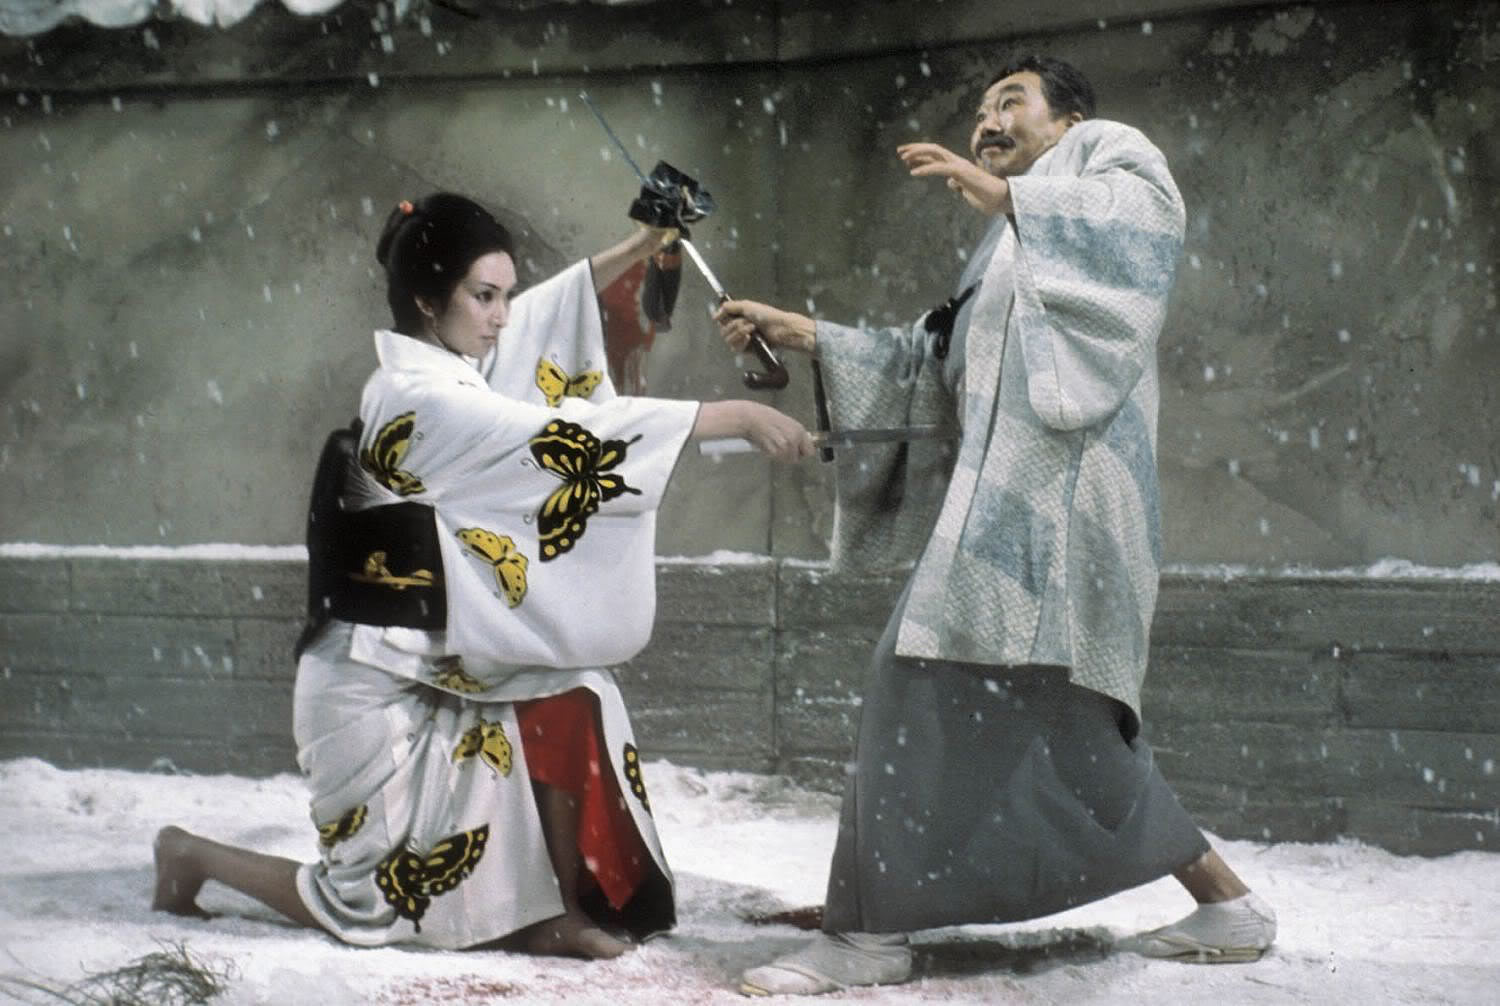 Lady Snow blood 1973, fight scene